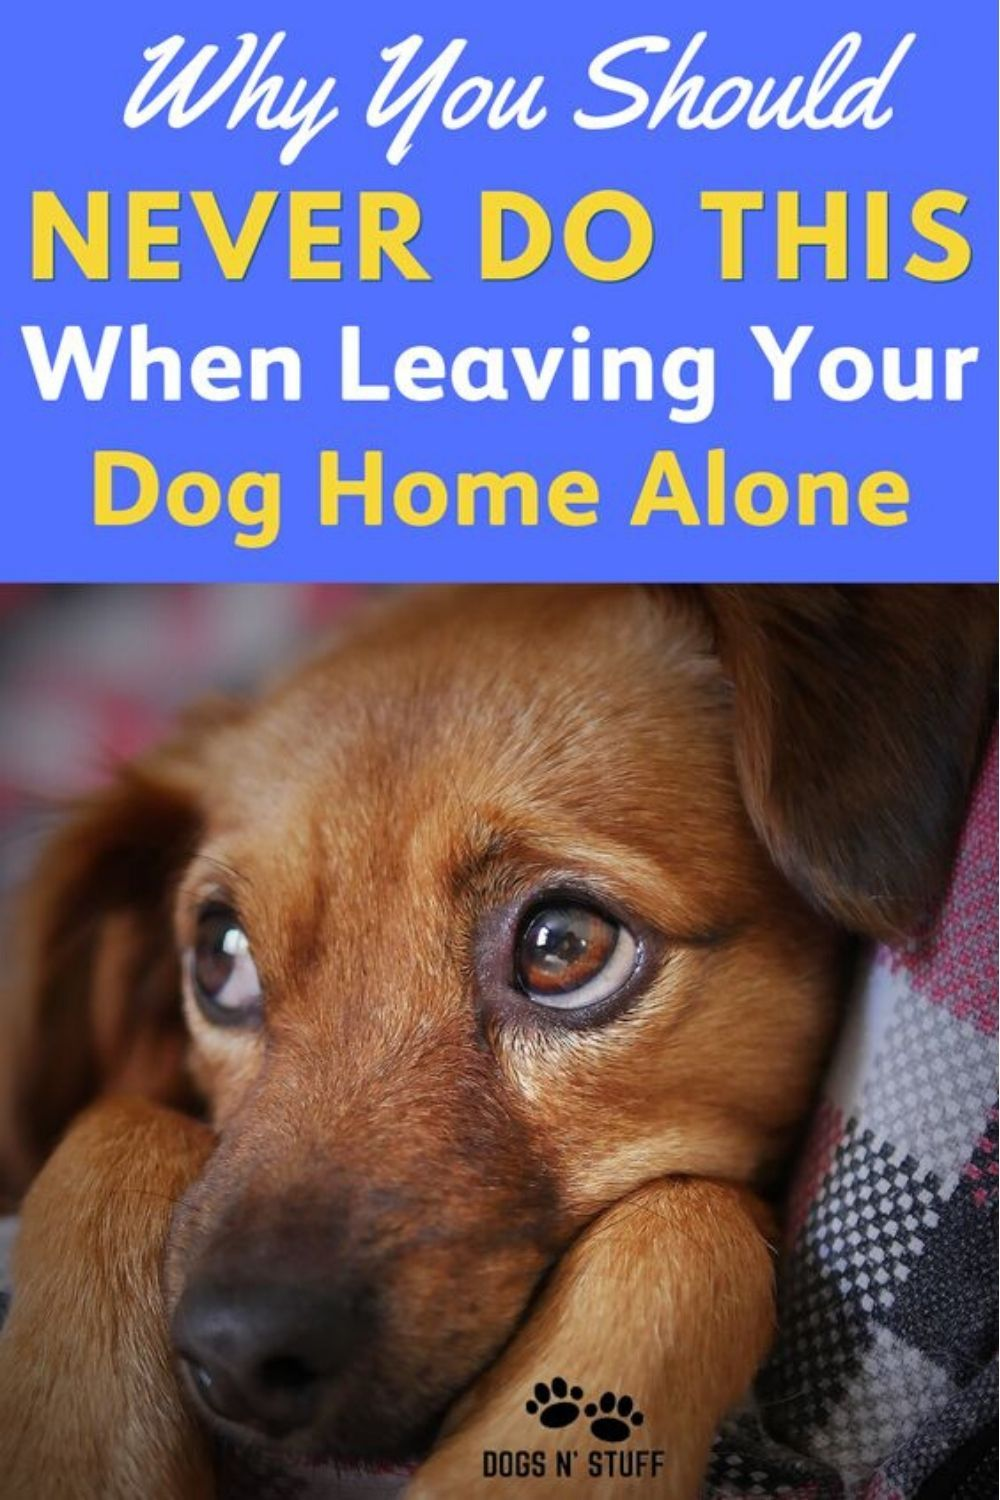 Why You Should NEVER Do This When Leaving Your Dog Home